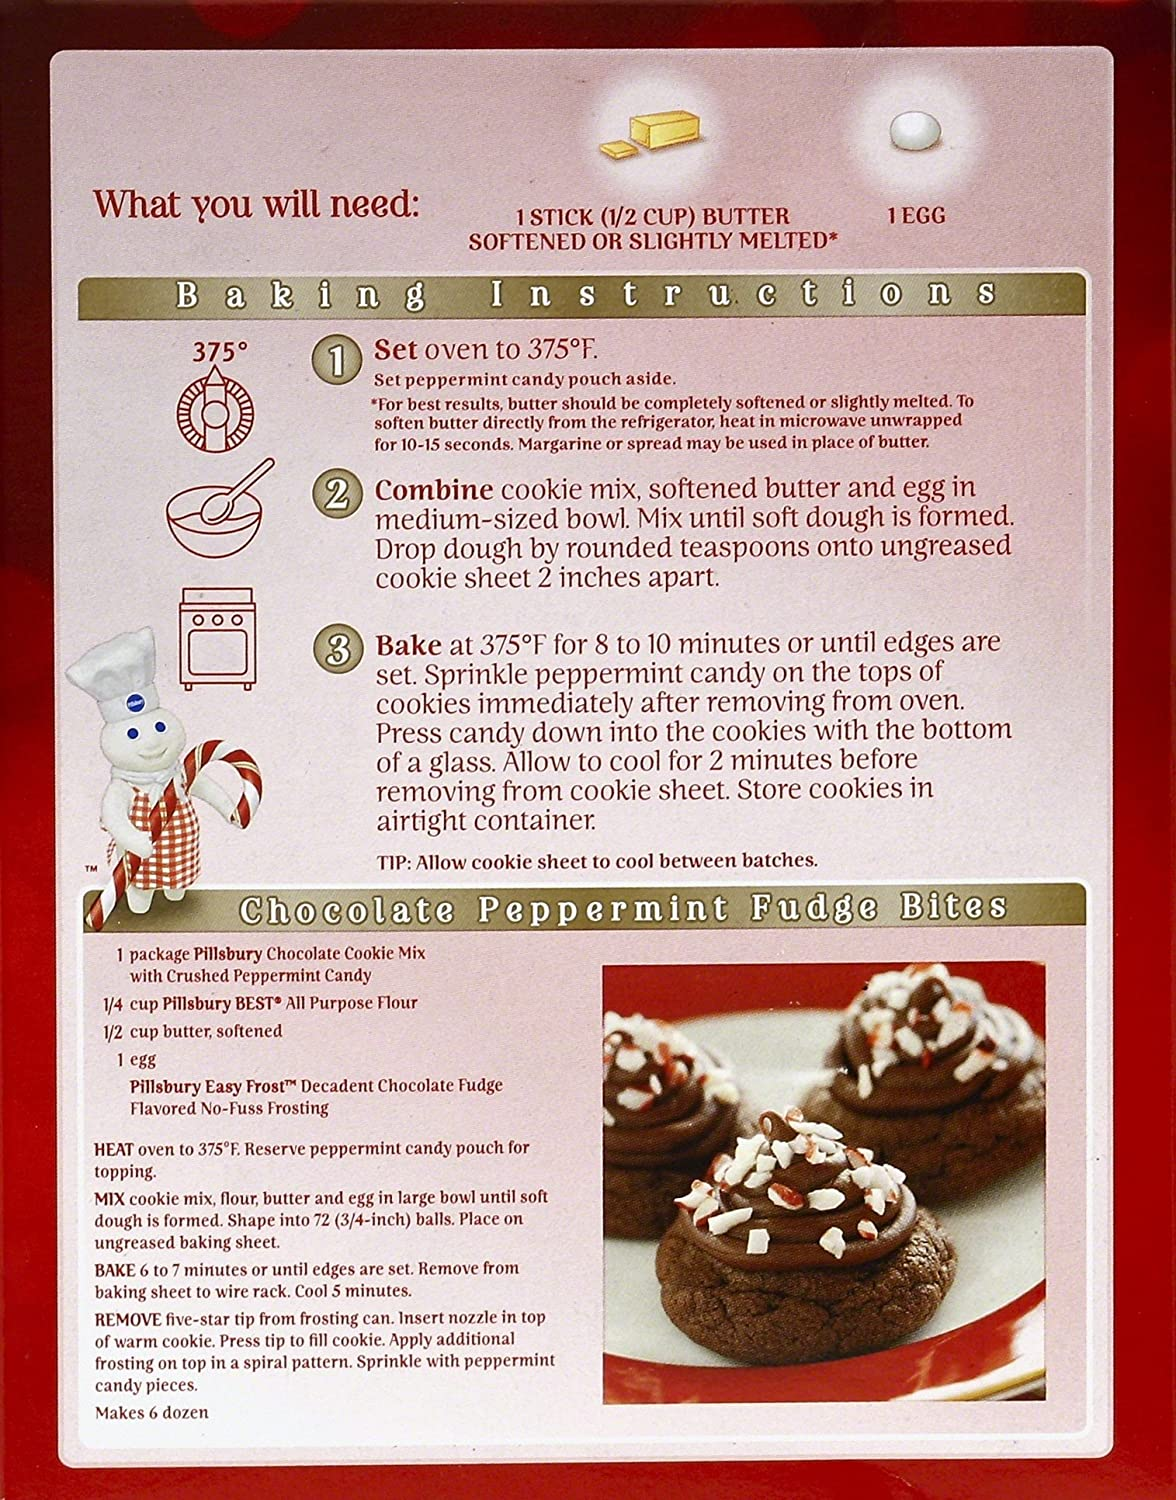 Pillsbury Chocolate Cookie Mix With Crushed Peppermint Candy 17 5 Ounce Pack Of 12